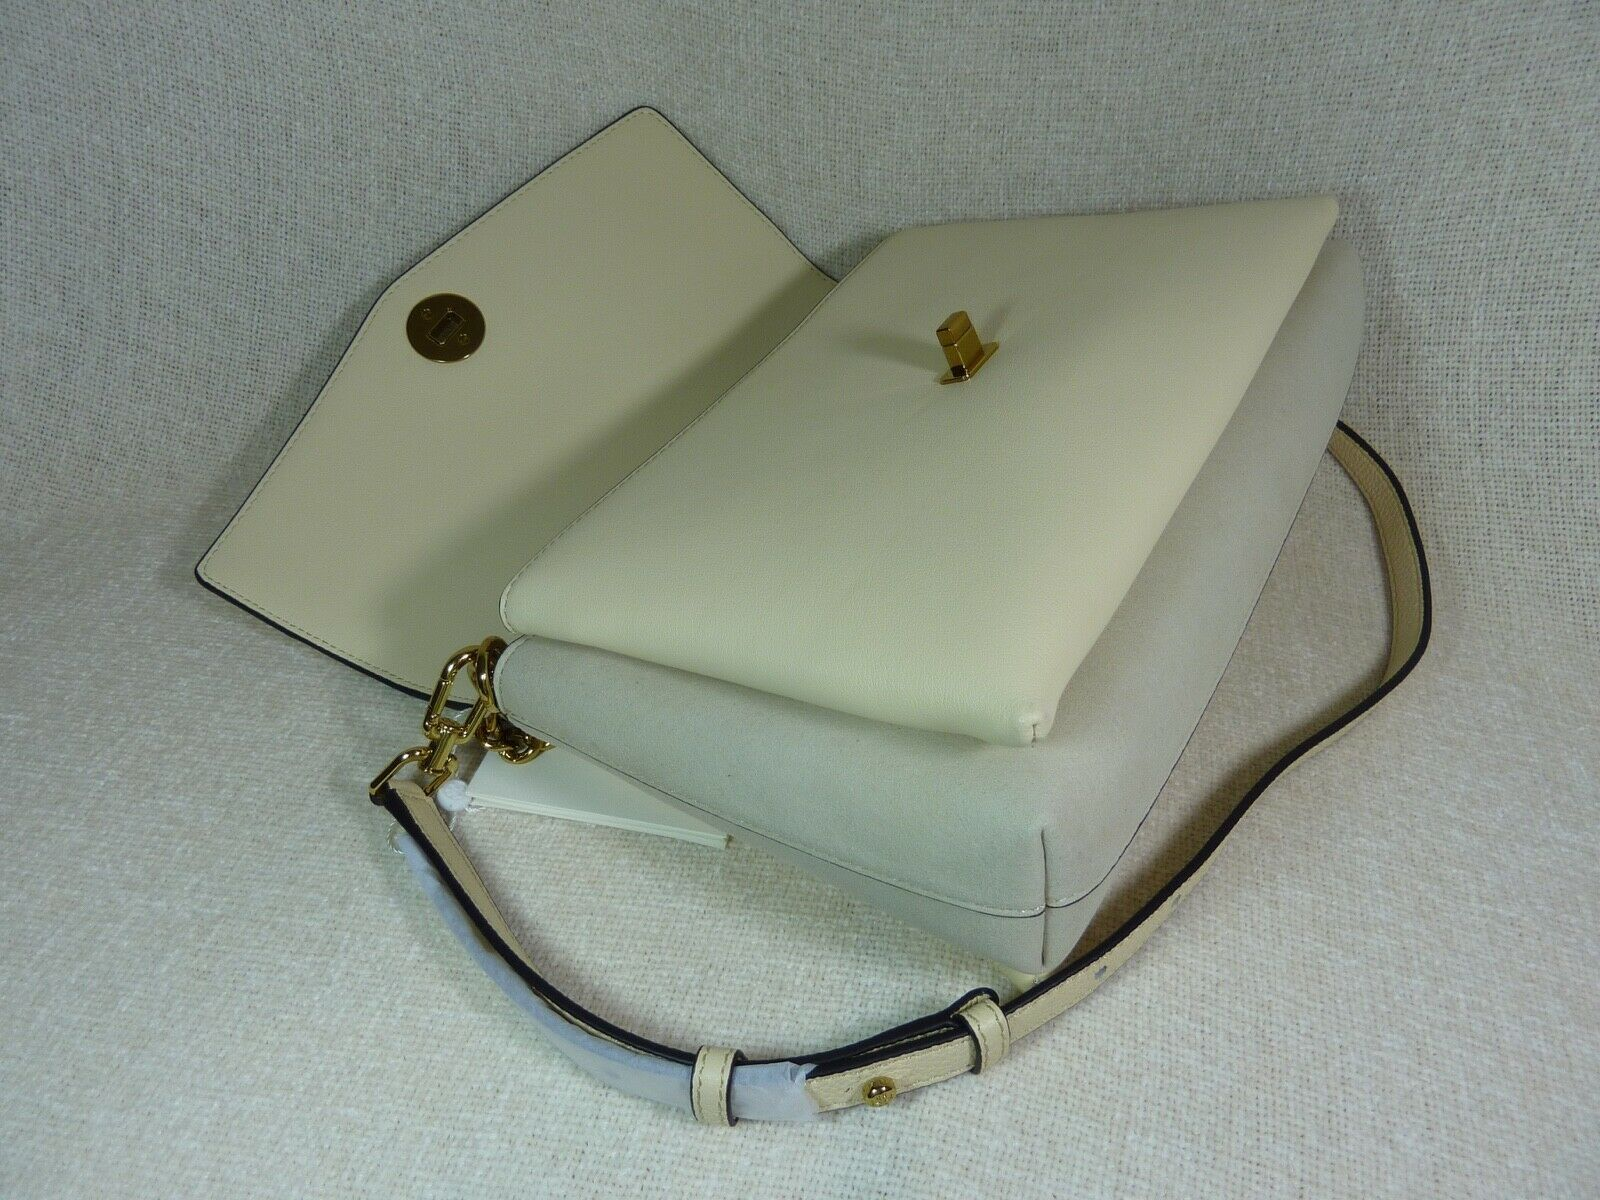 NWT Tory Burch New Cream KIRA Mixed-material Double-strap Shoulder Bag $528 image 6